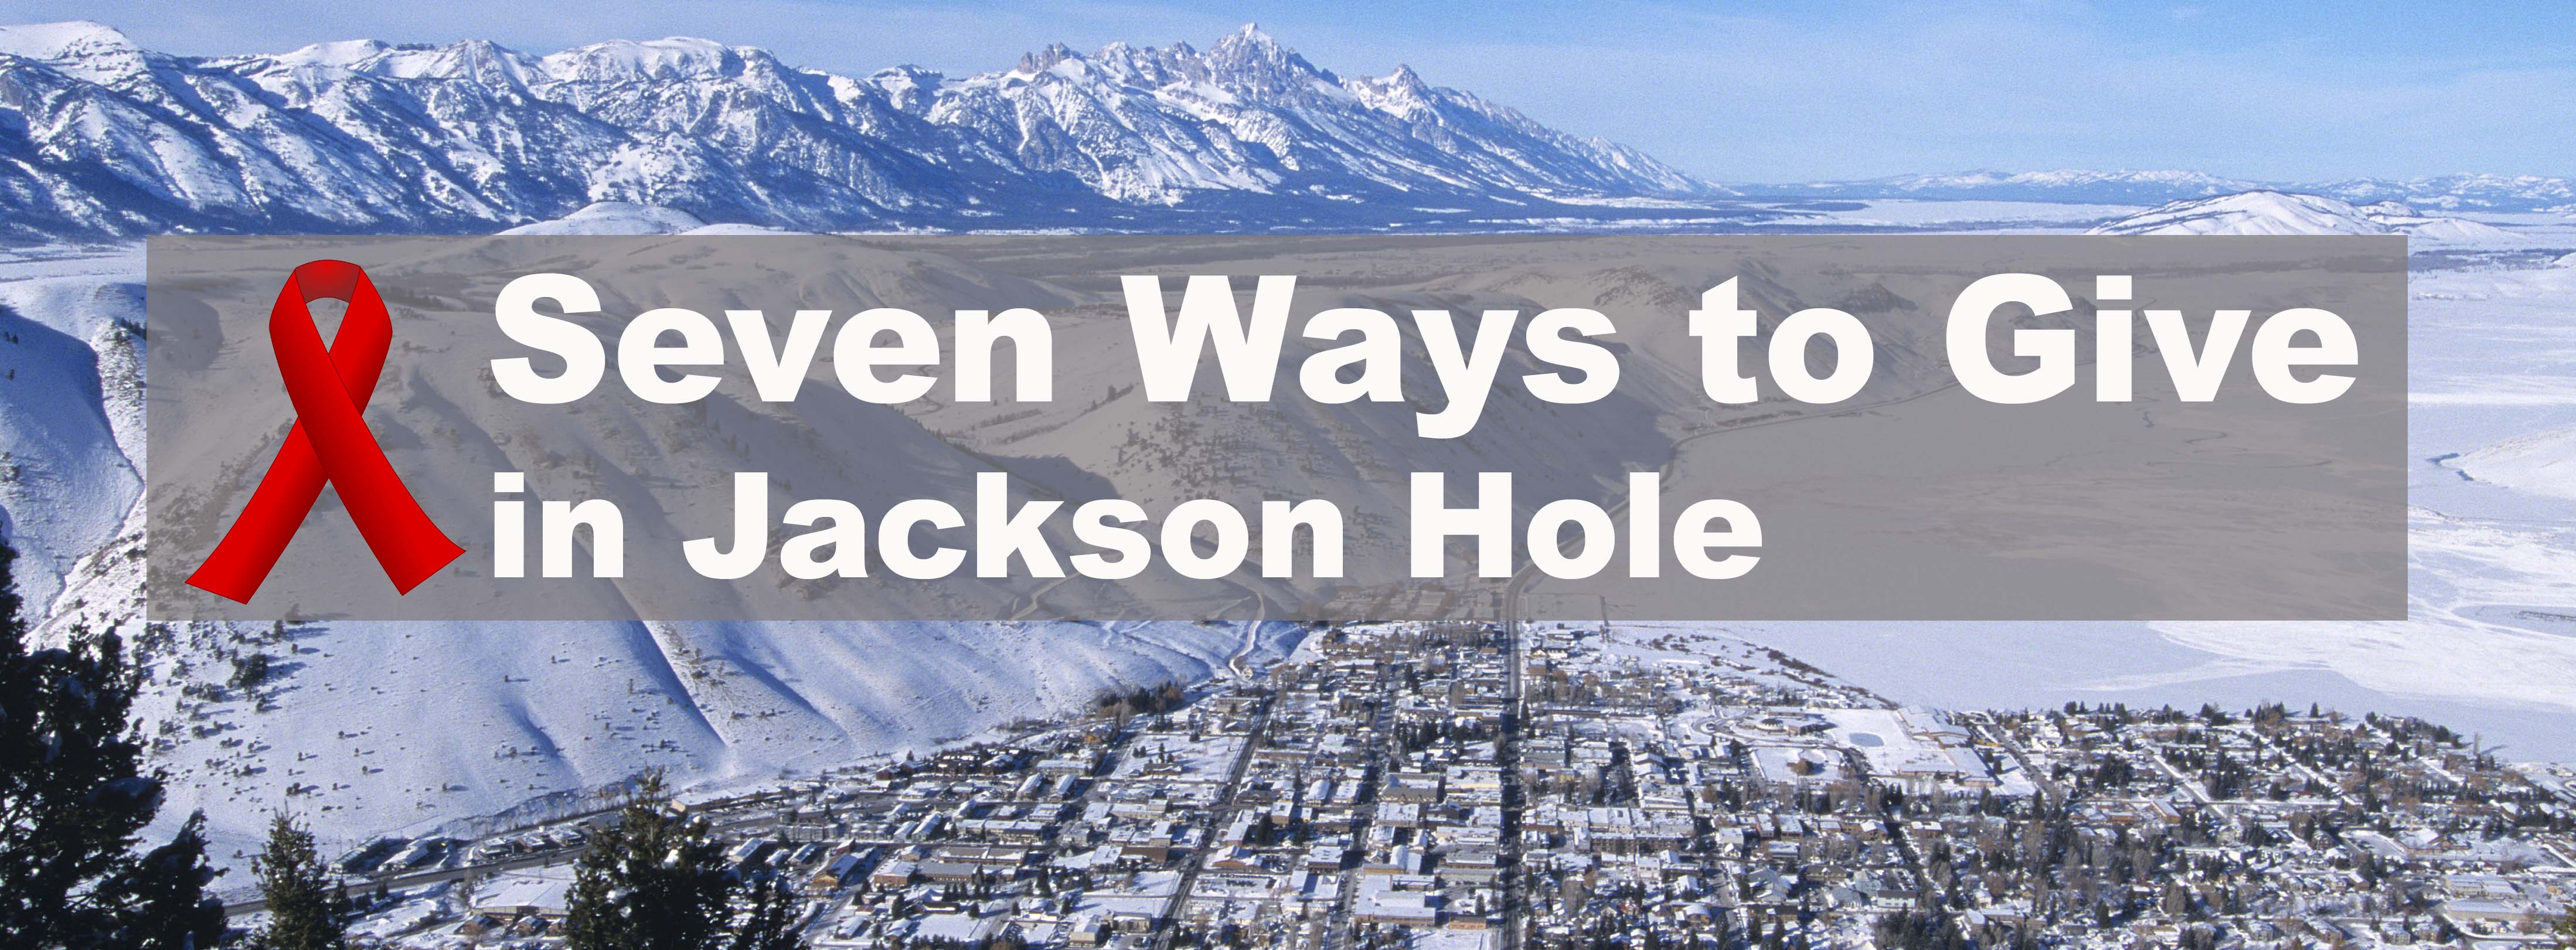 Seven Ways to Give in Jackson Hole